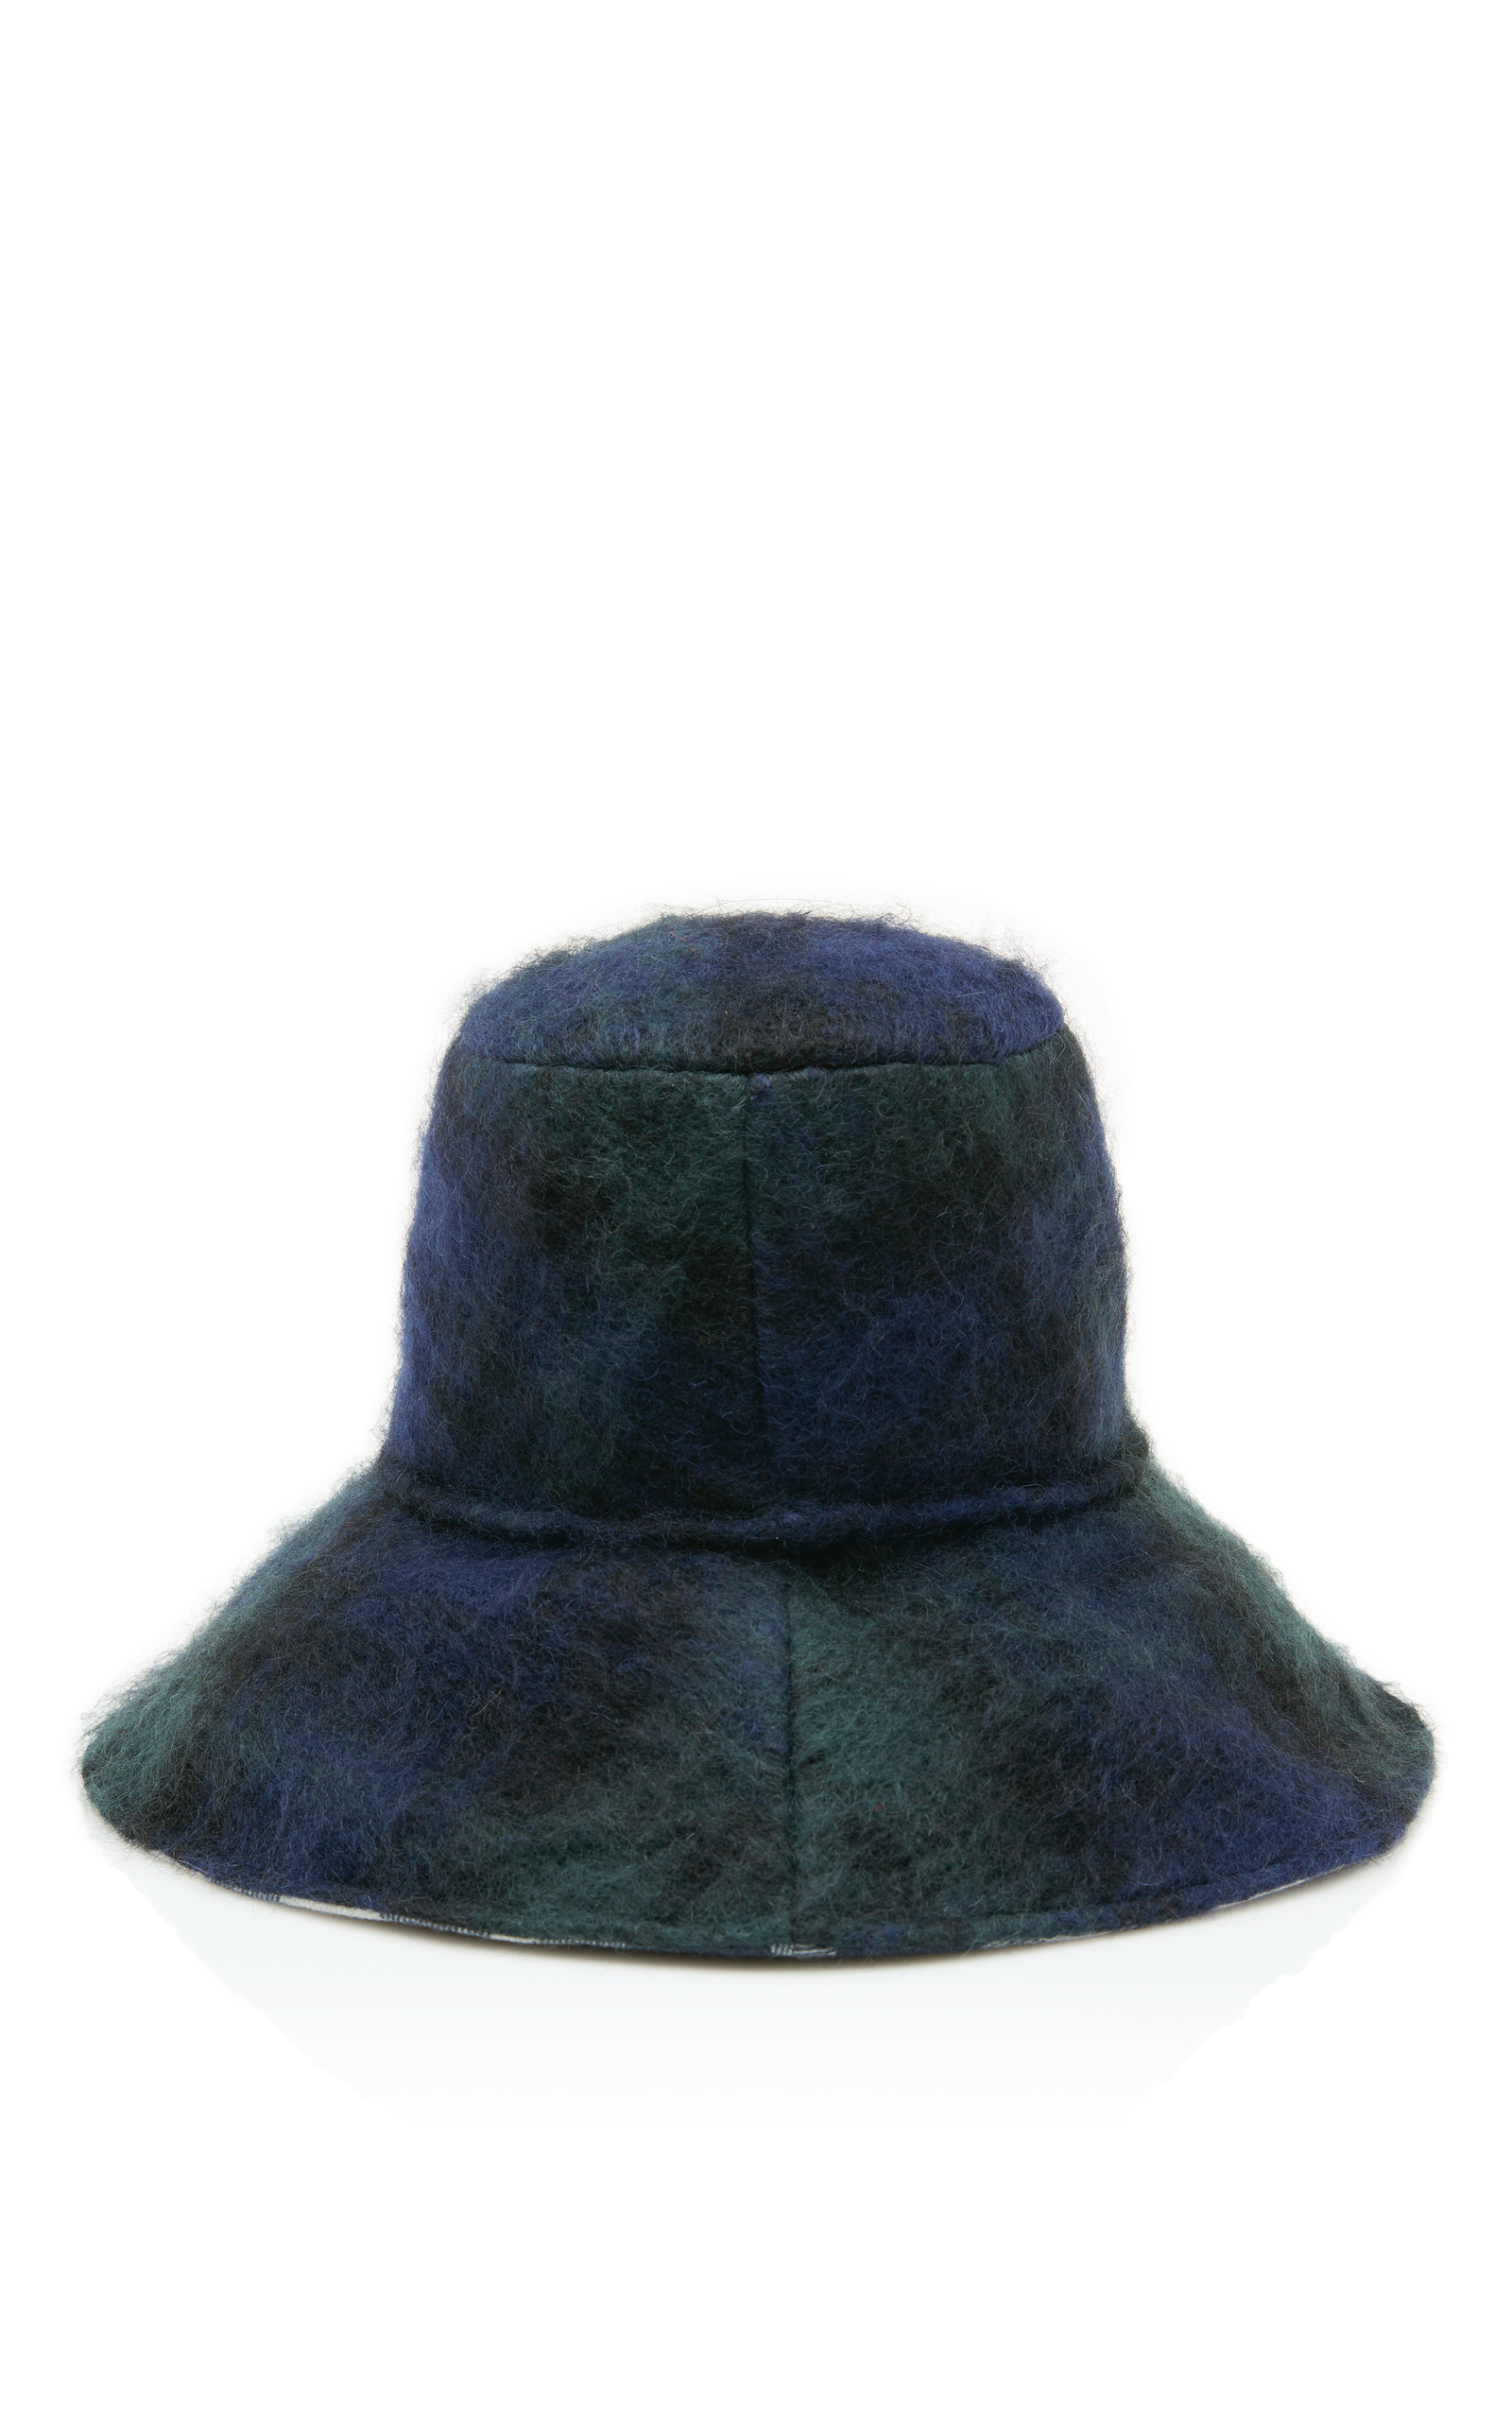 Isabella Checked Wool Bucket Hat Maison Michel 100% Authentic Cheap Price Clearance Visa Payment Best Wholesale For Sale Low Shipping Online LAtkx3uZe